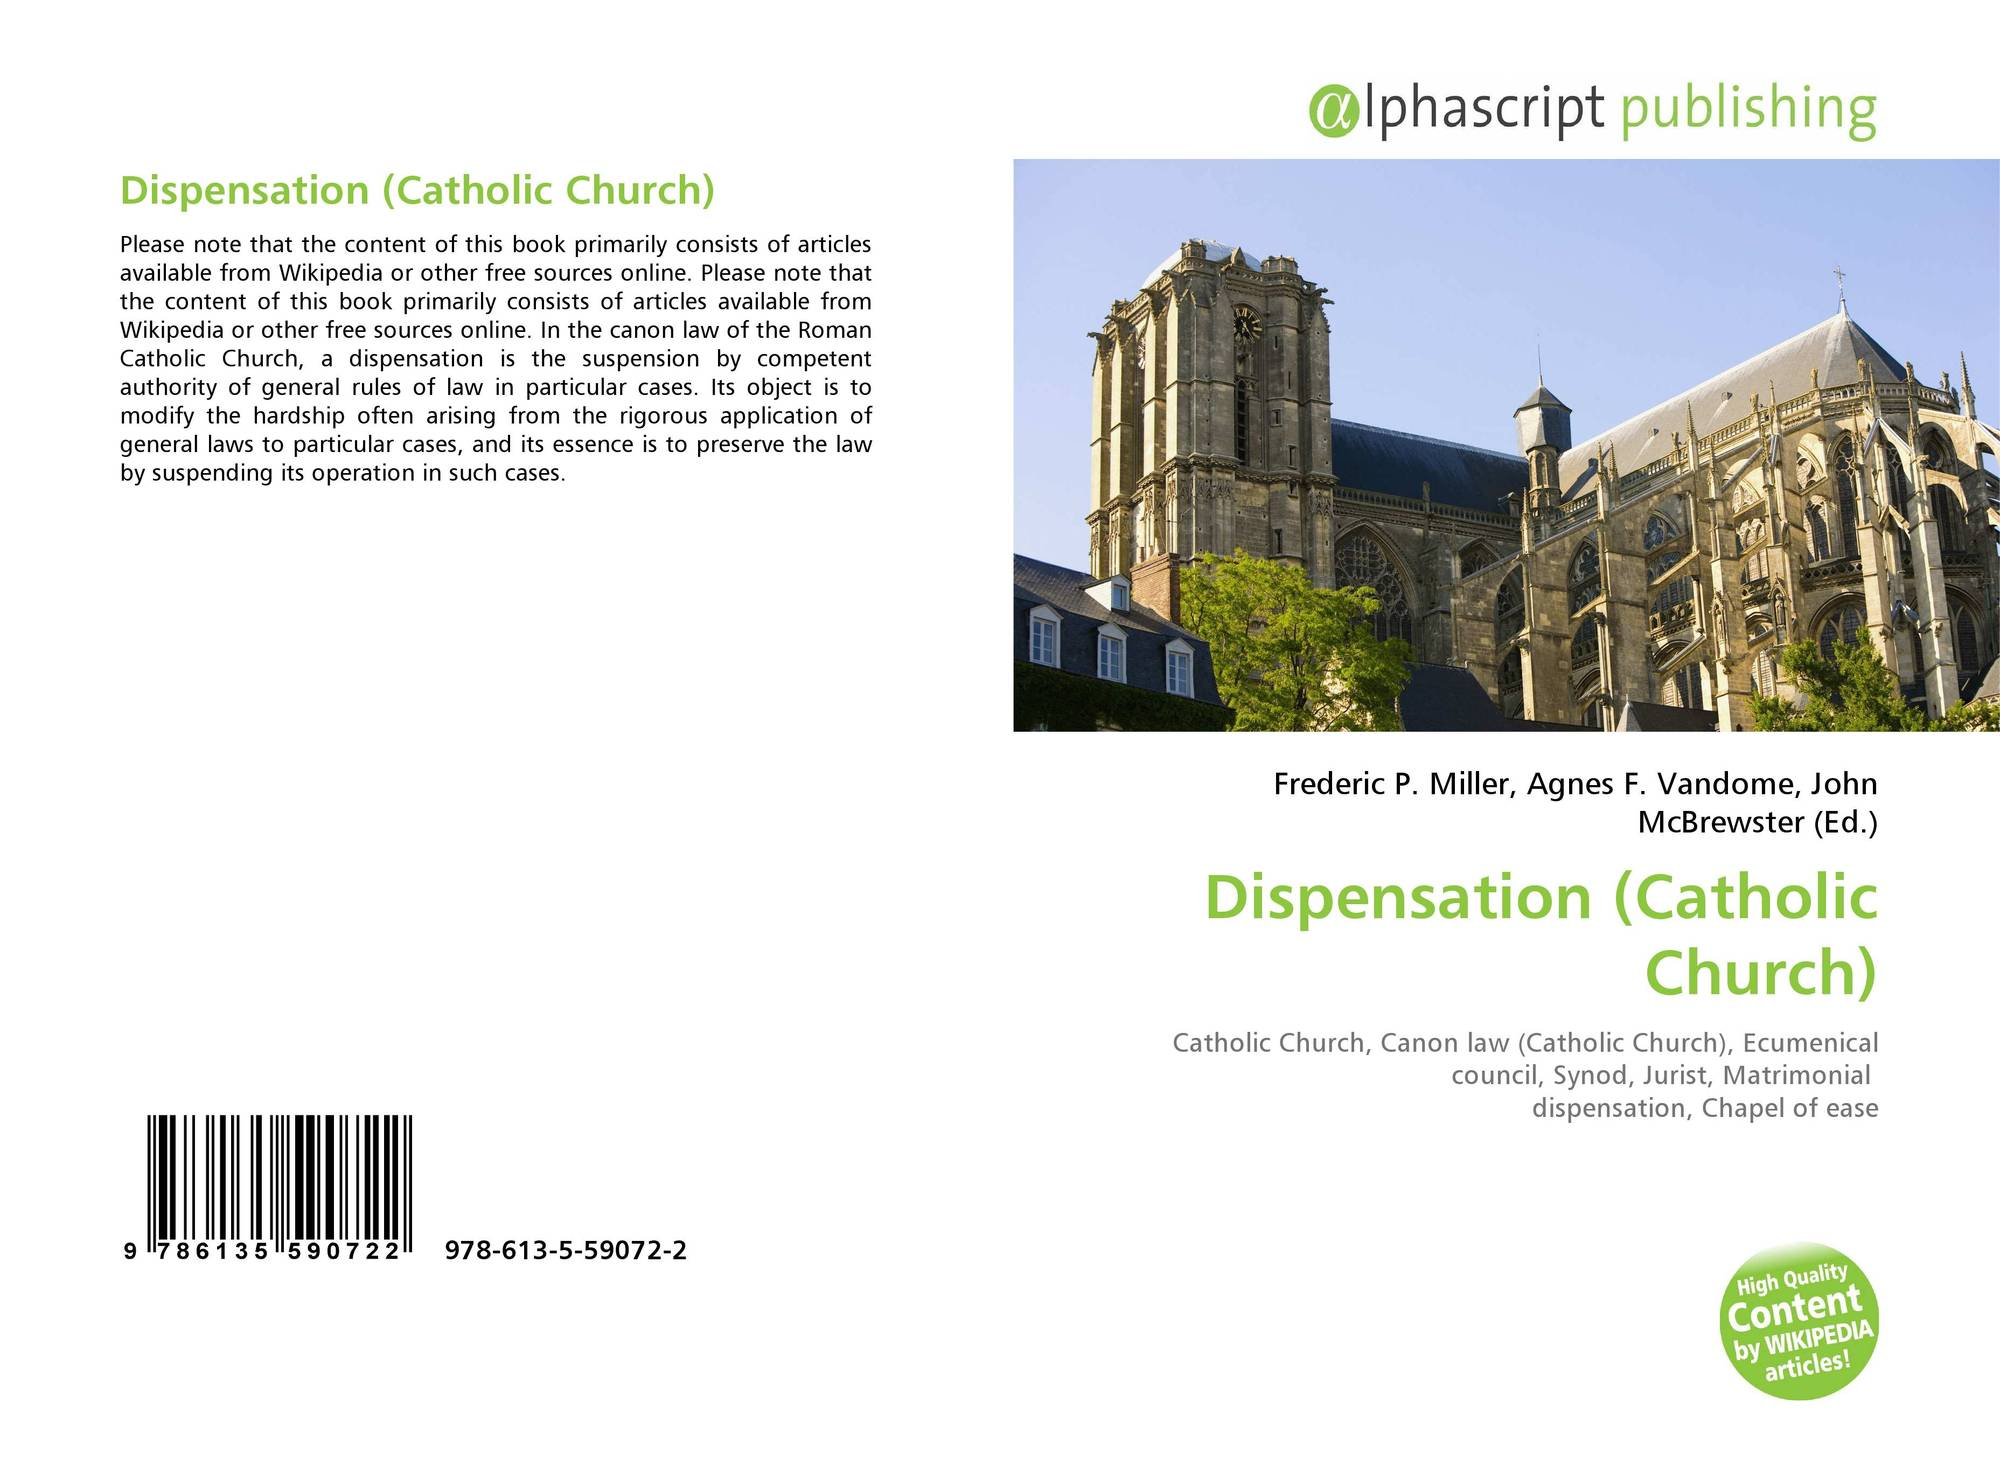 Dispensation (Catholic Church), 978-613-5-59072-2, 6135590723